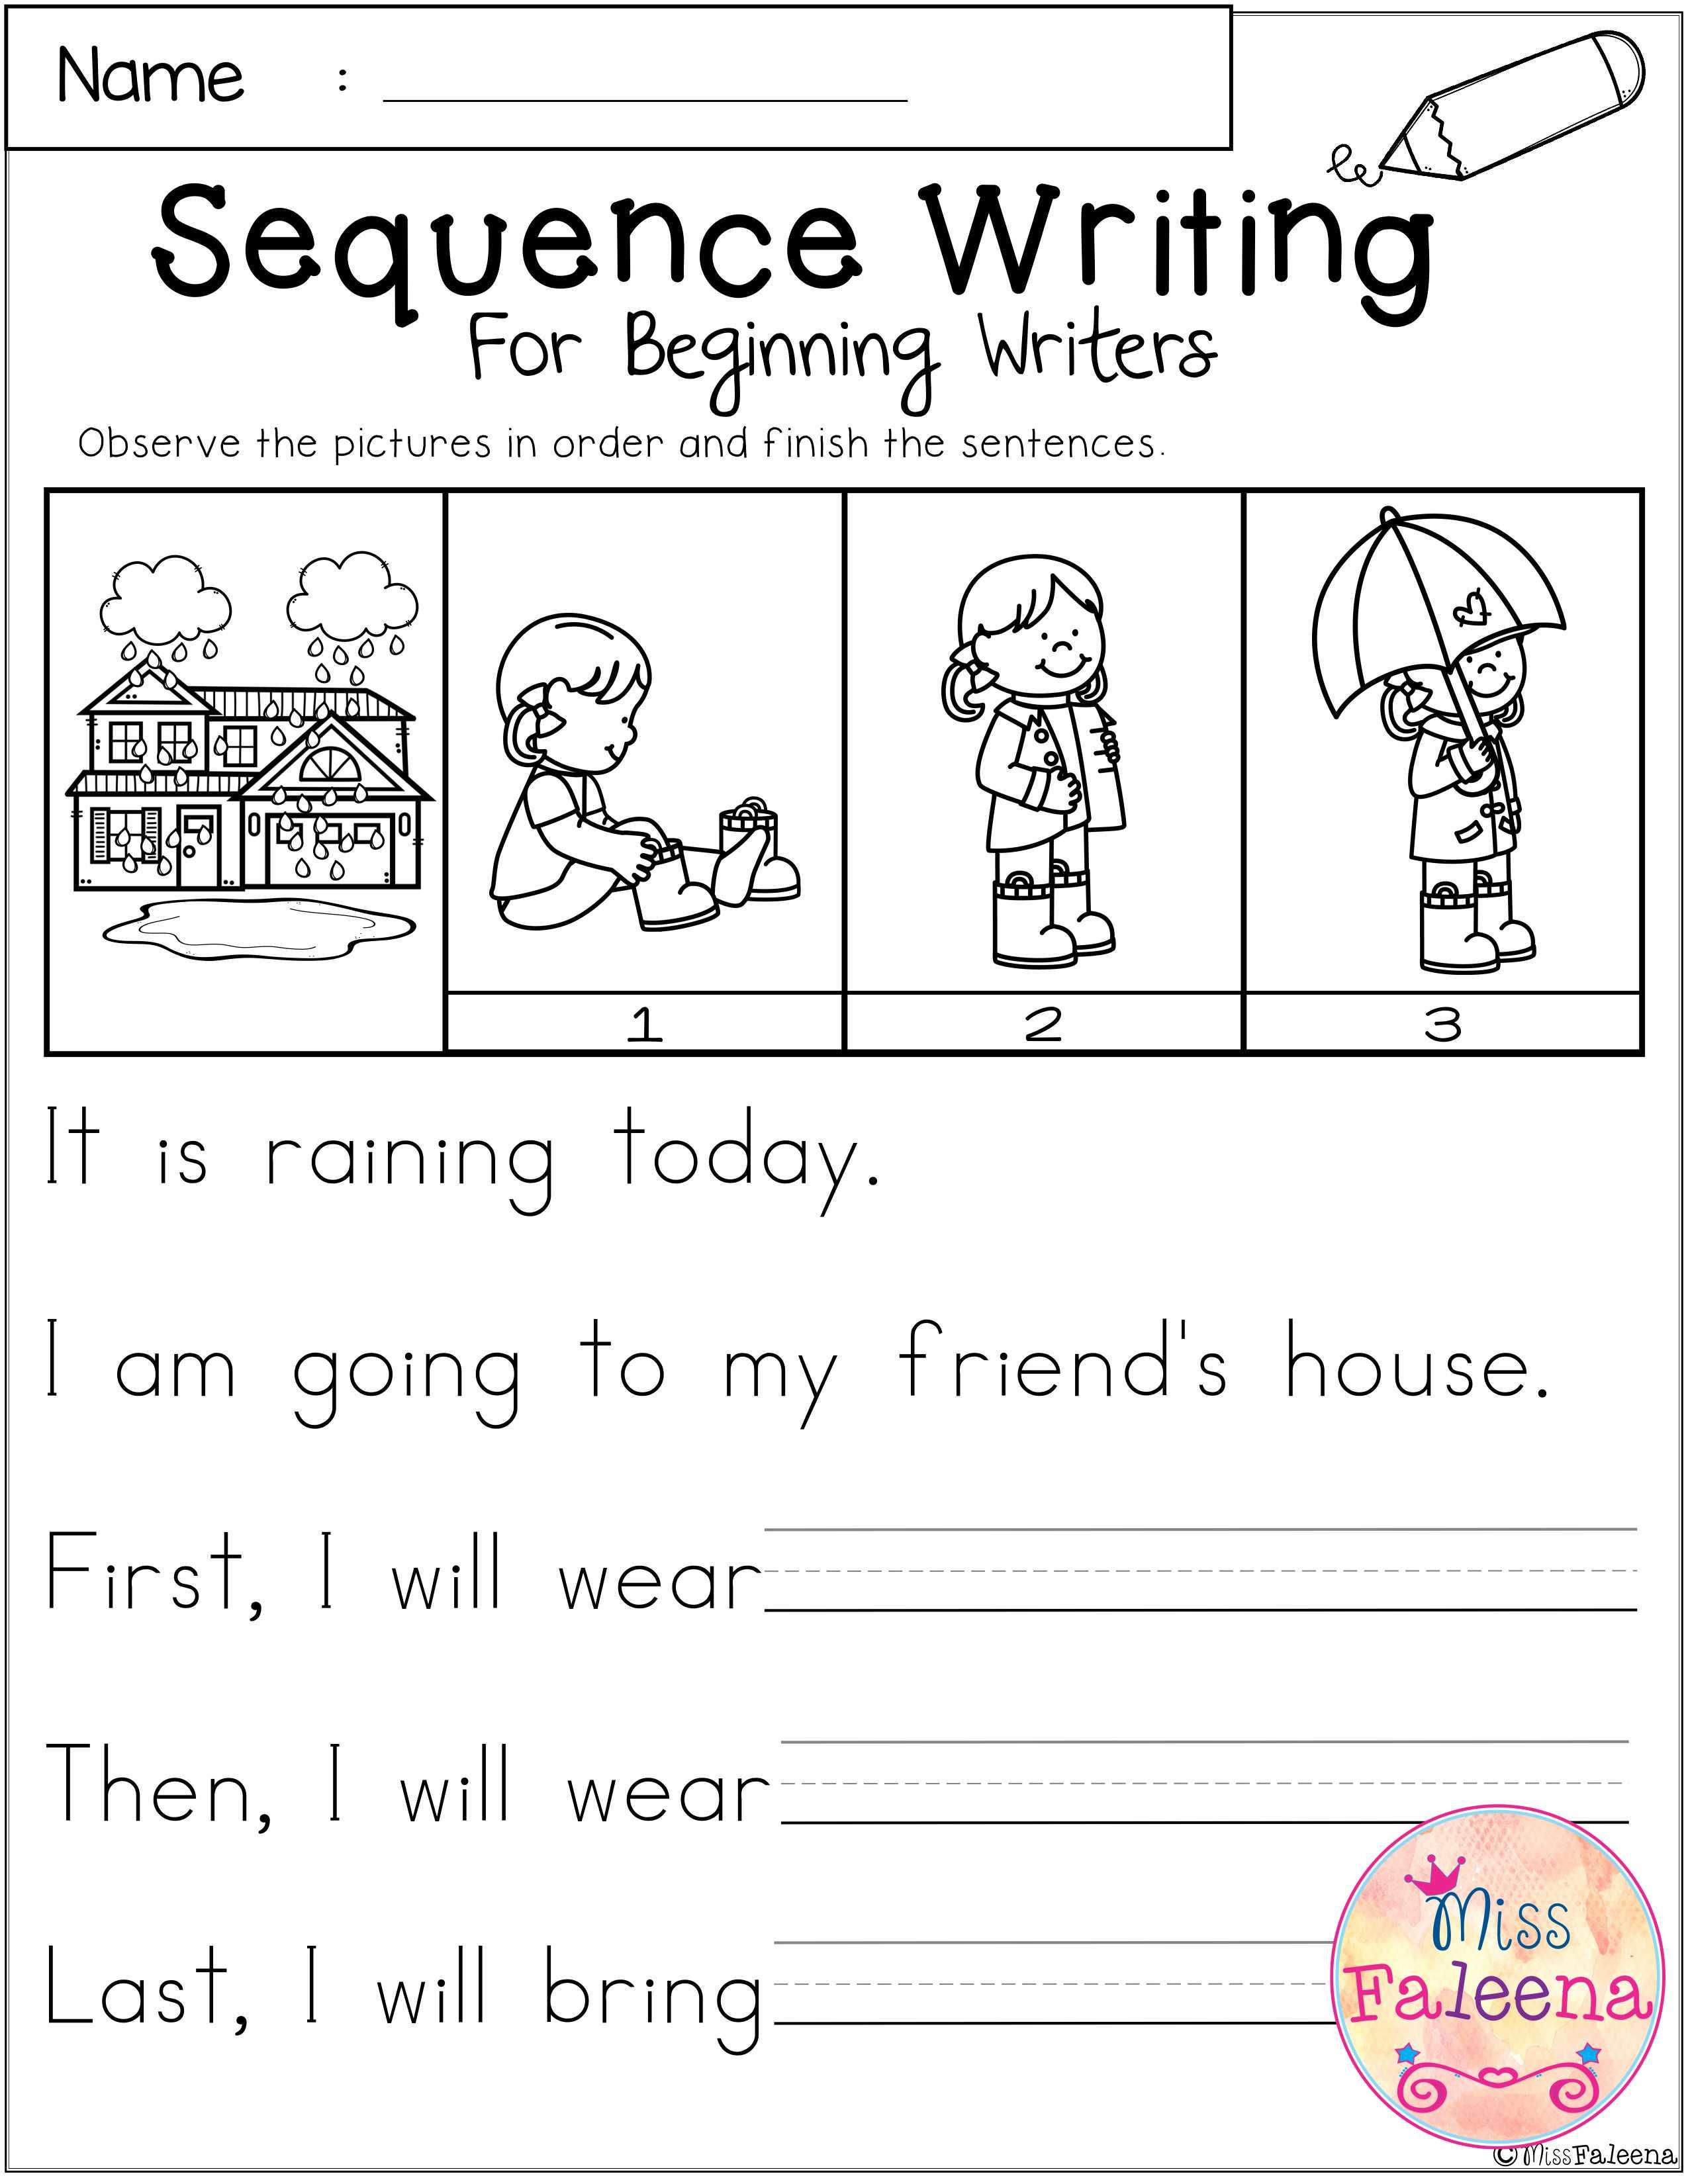 Story Sequence Worksheets for Kindergarten March Sequence Writing for Beginning Writers